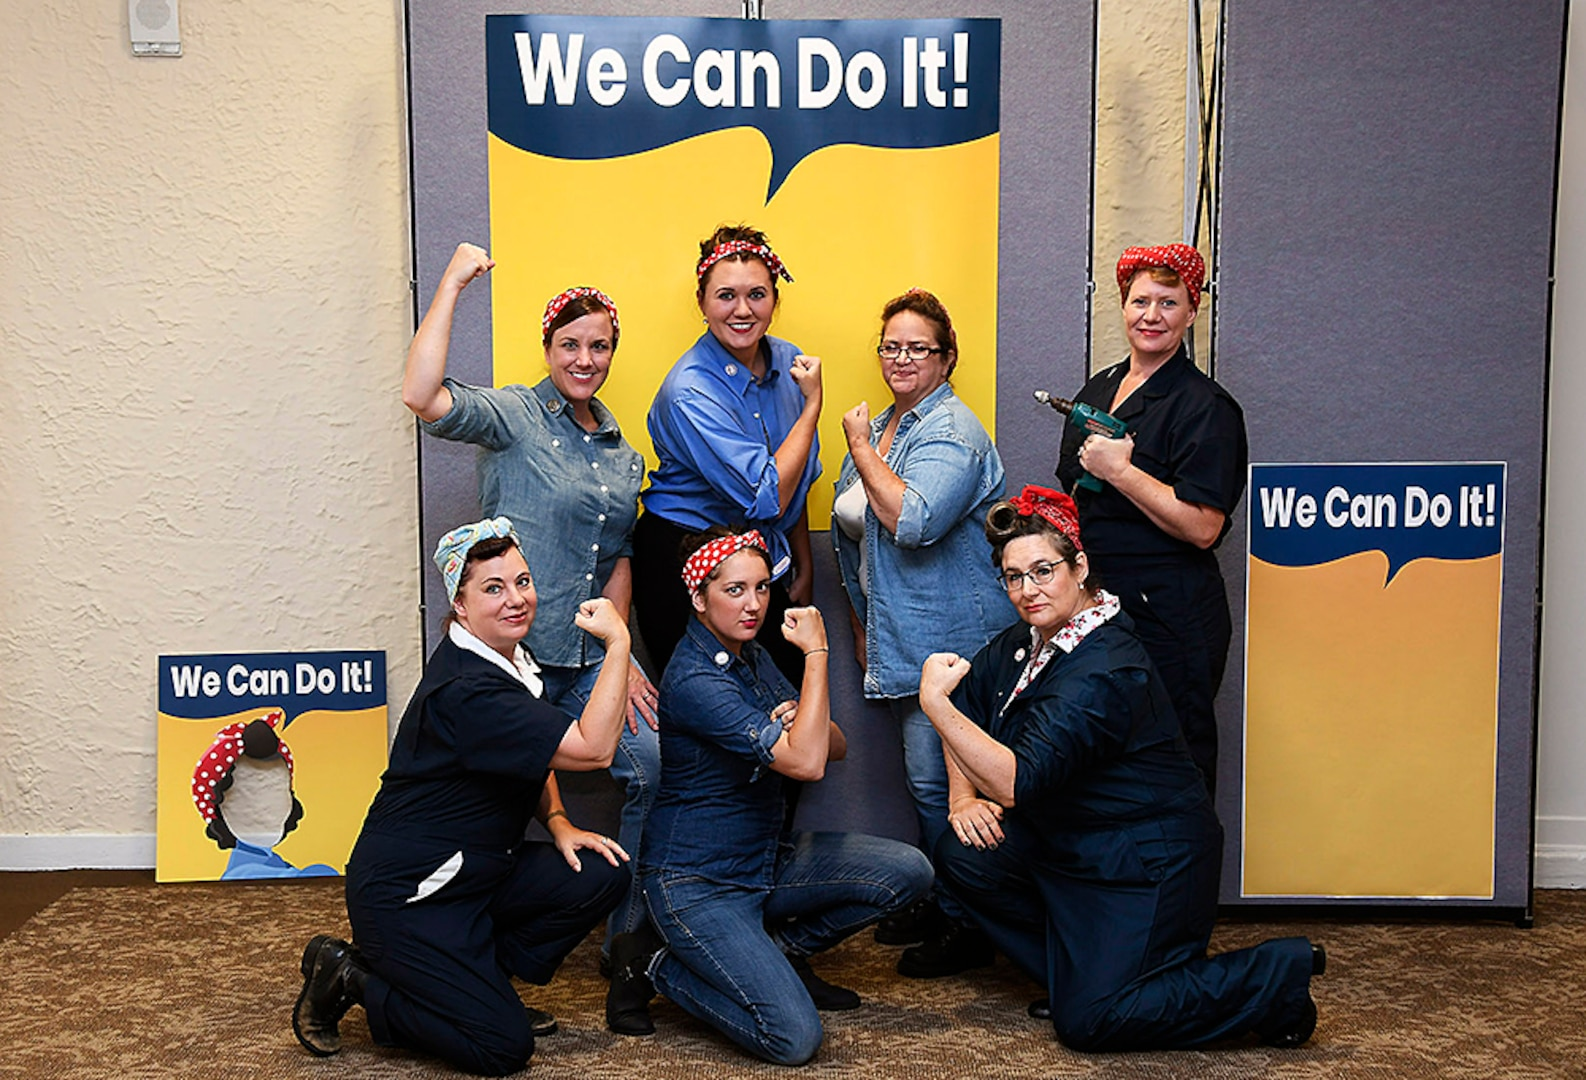 The stories of WWII-era working women were recently produced and portrayed in commemoration of Women's Equality Day by DLA's Renelle Hansen, Elli Blonde, Angel Morgan, Robin Rogers (top row), Tina Lilly, Stacy Marsala, Zoe Orchel (bottom row) and others in Battle Creek, Michigan.